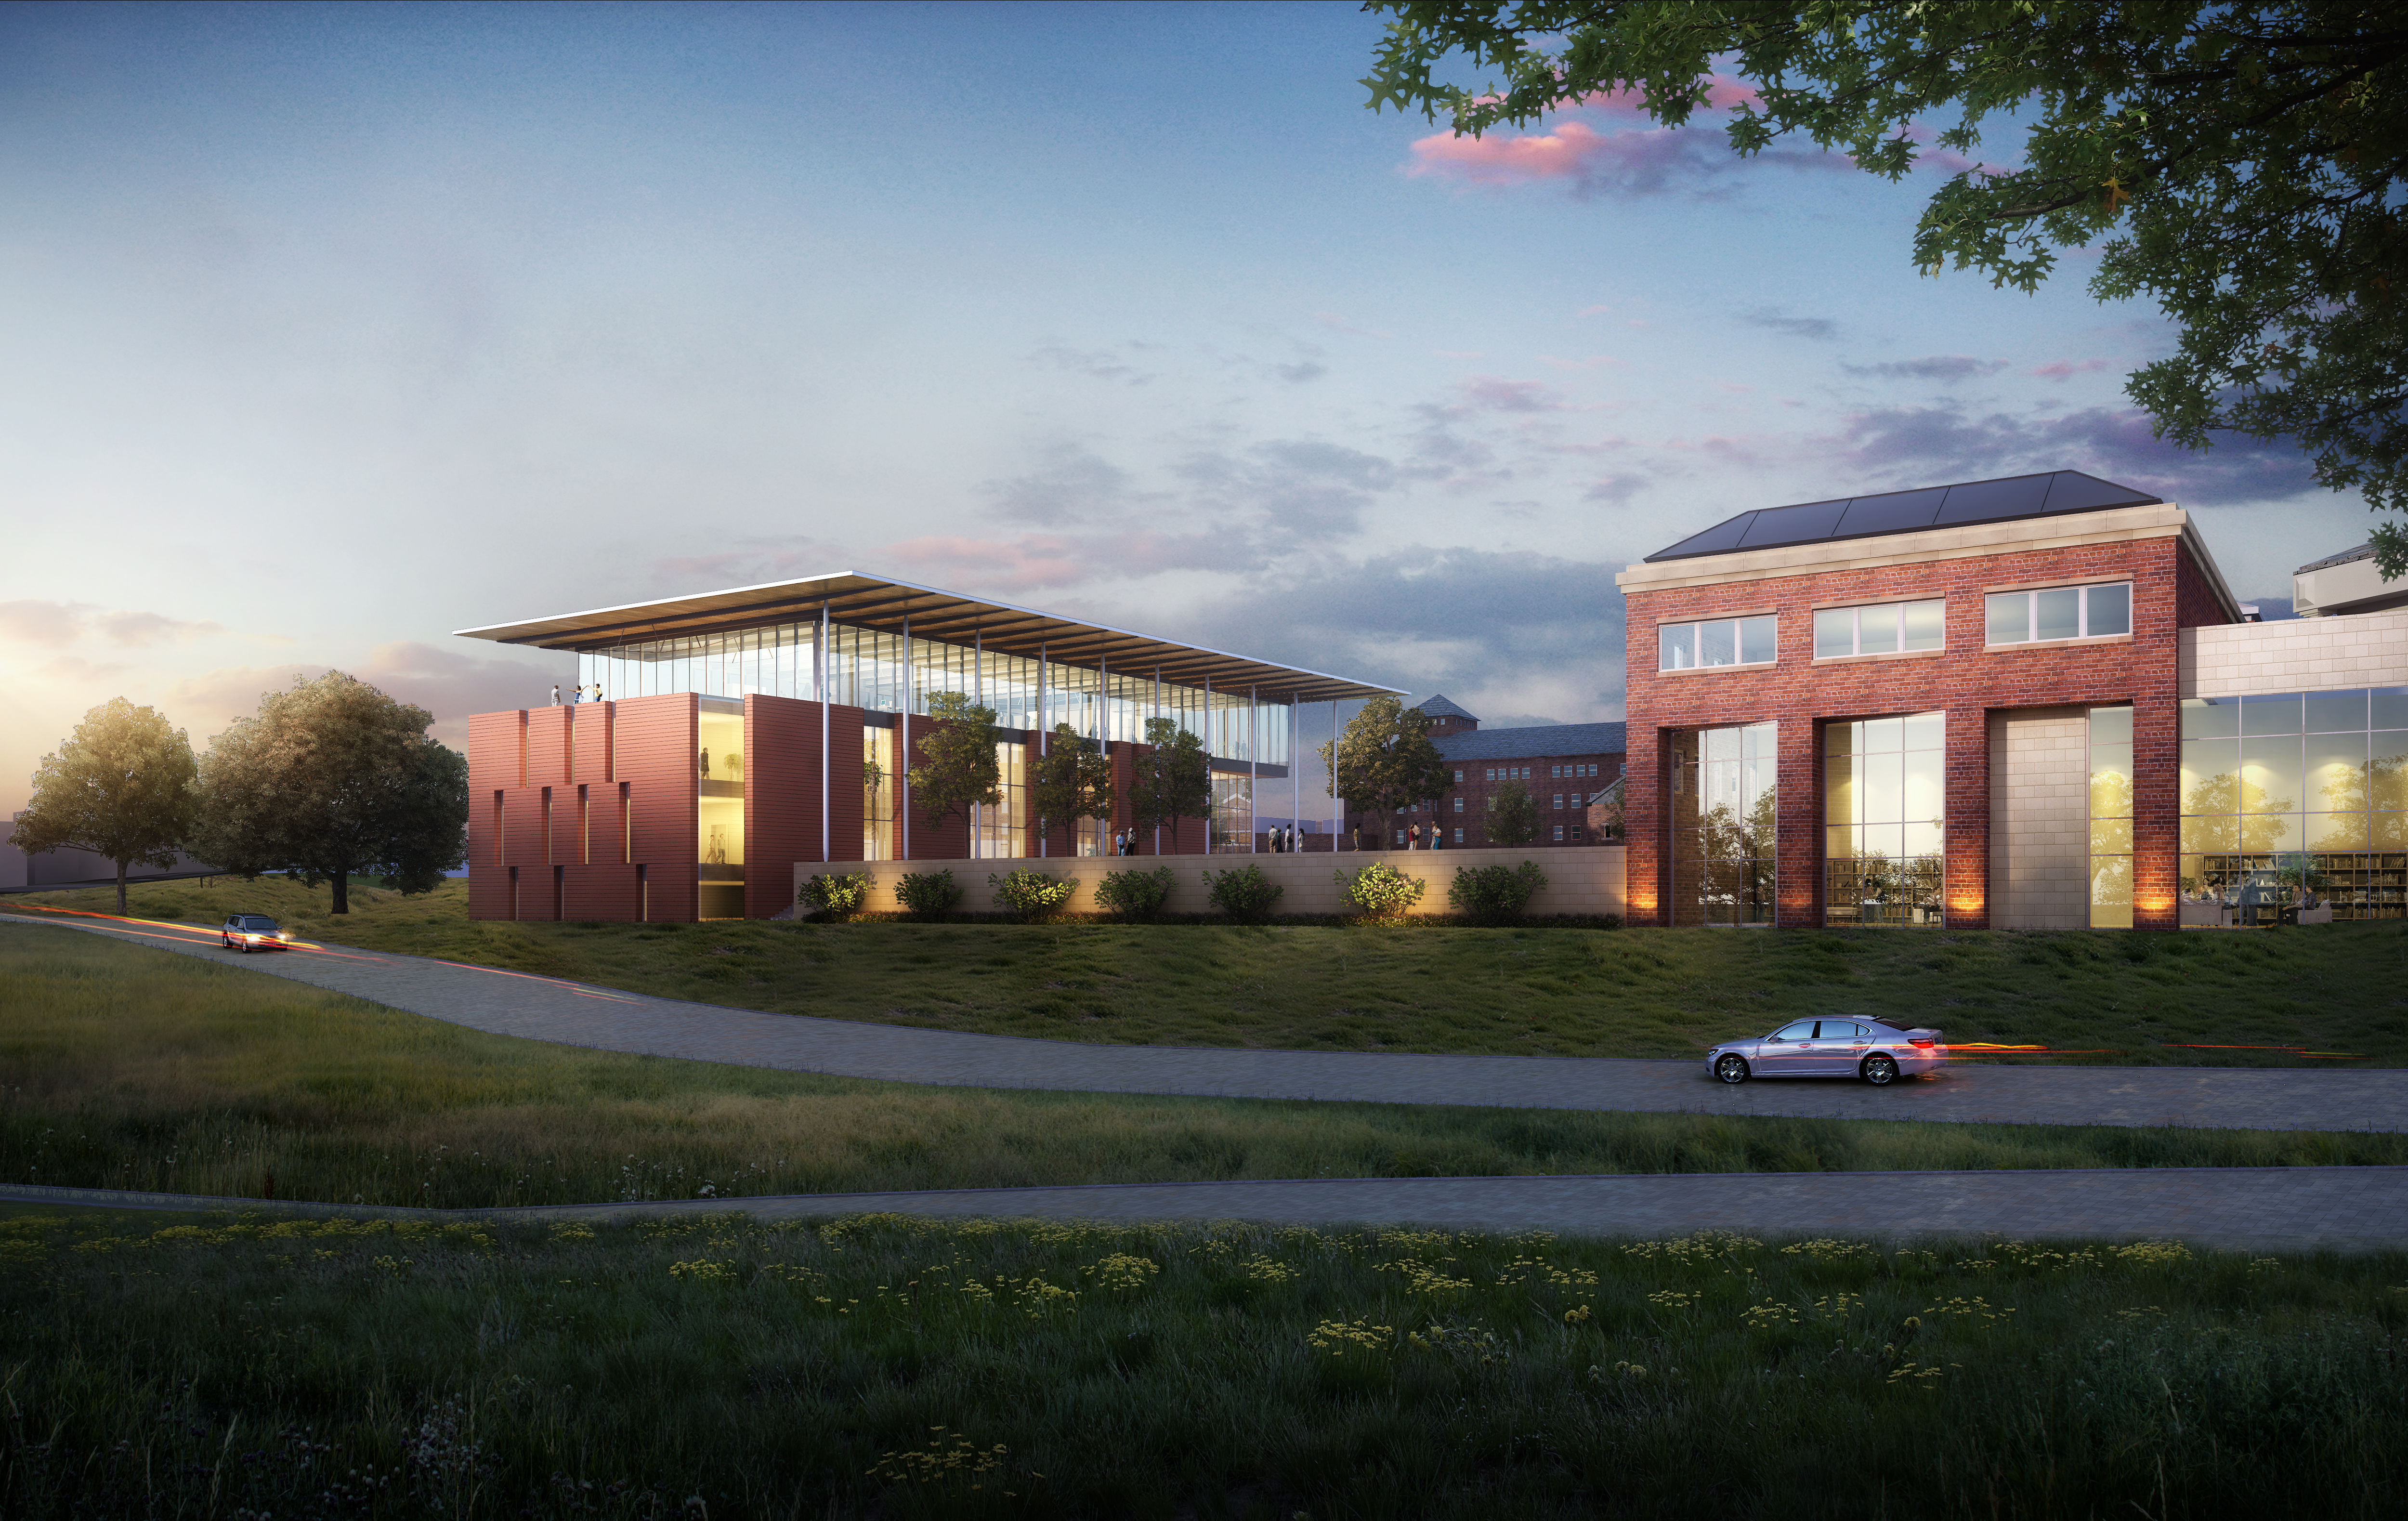 A look at the proposed surgical center (Image courtesy of KCUMB).